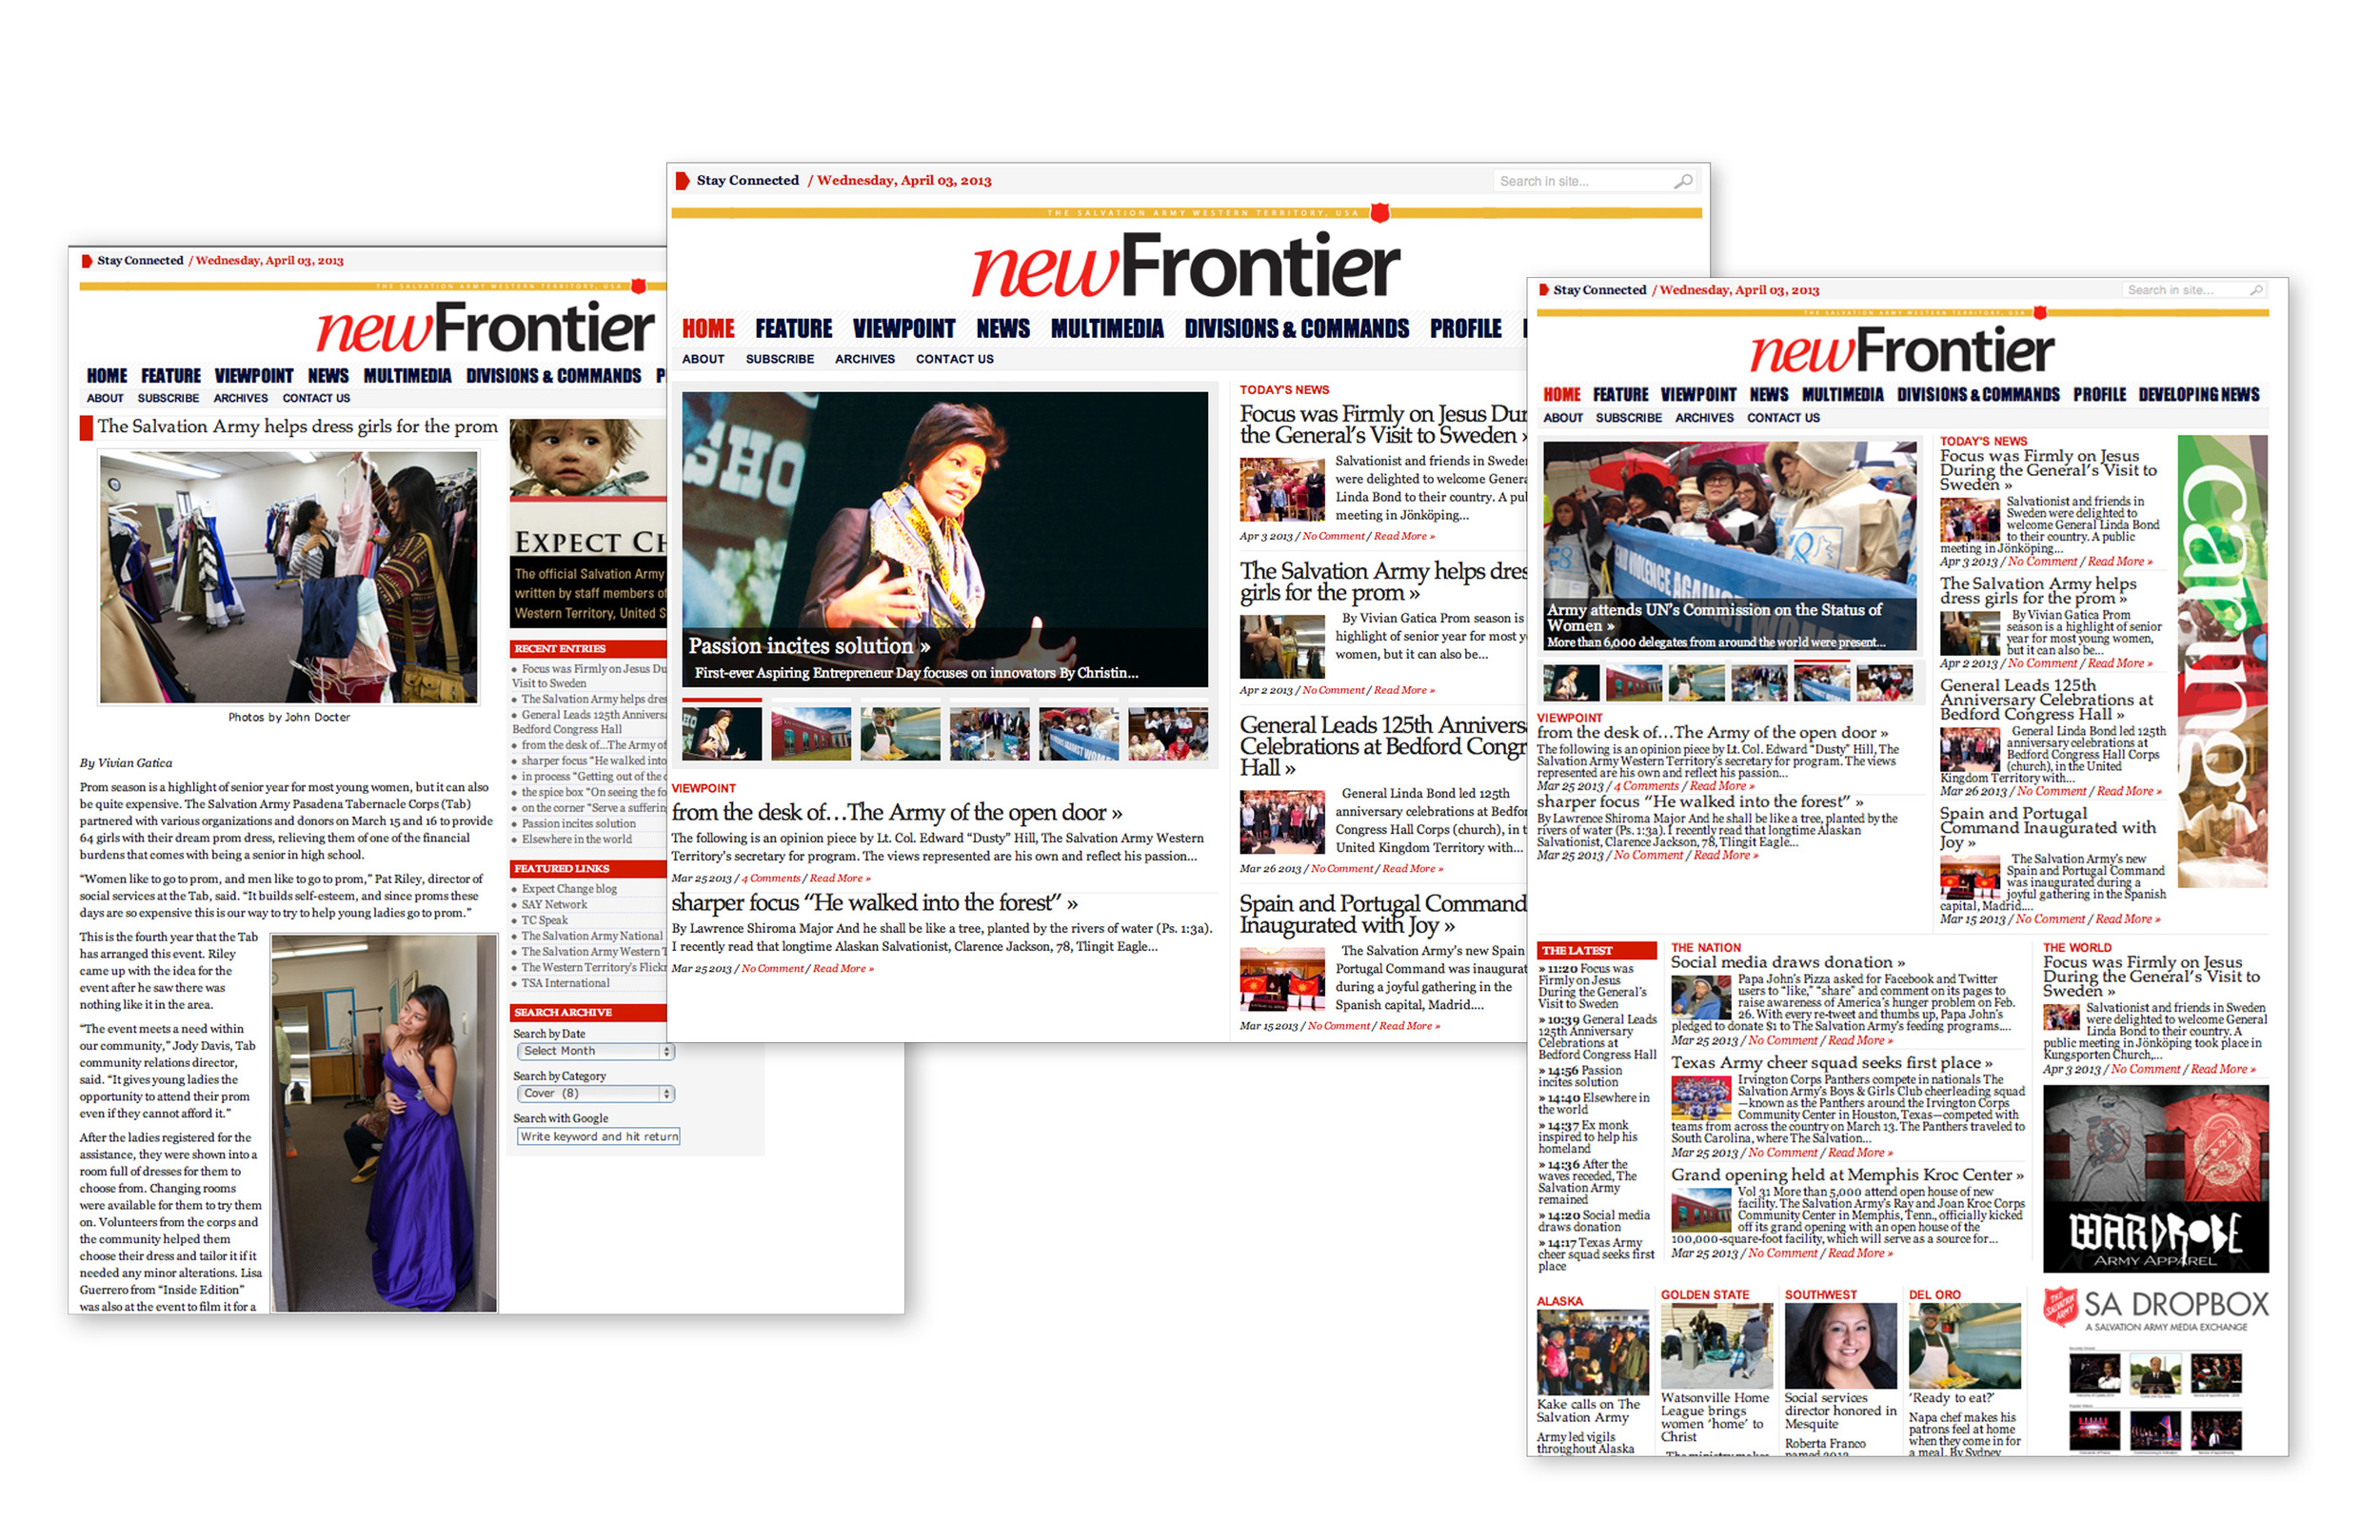 New Frontier_Web content manager